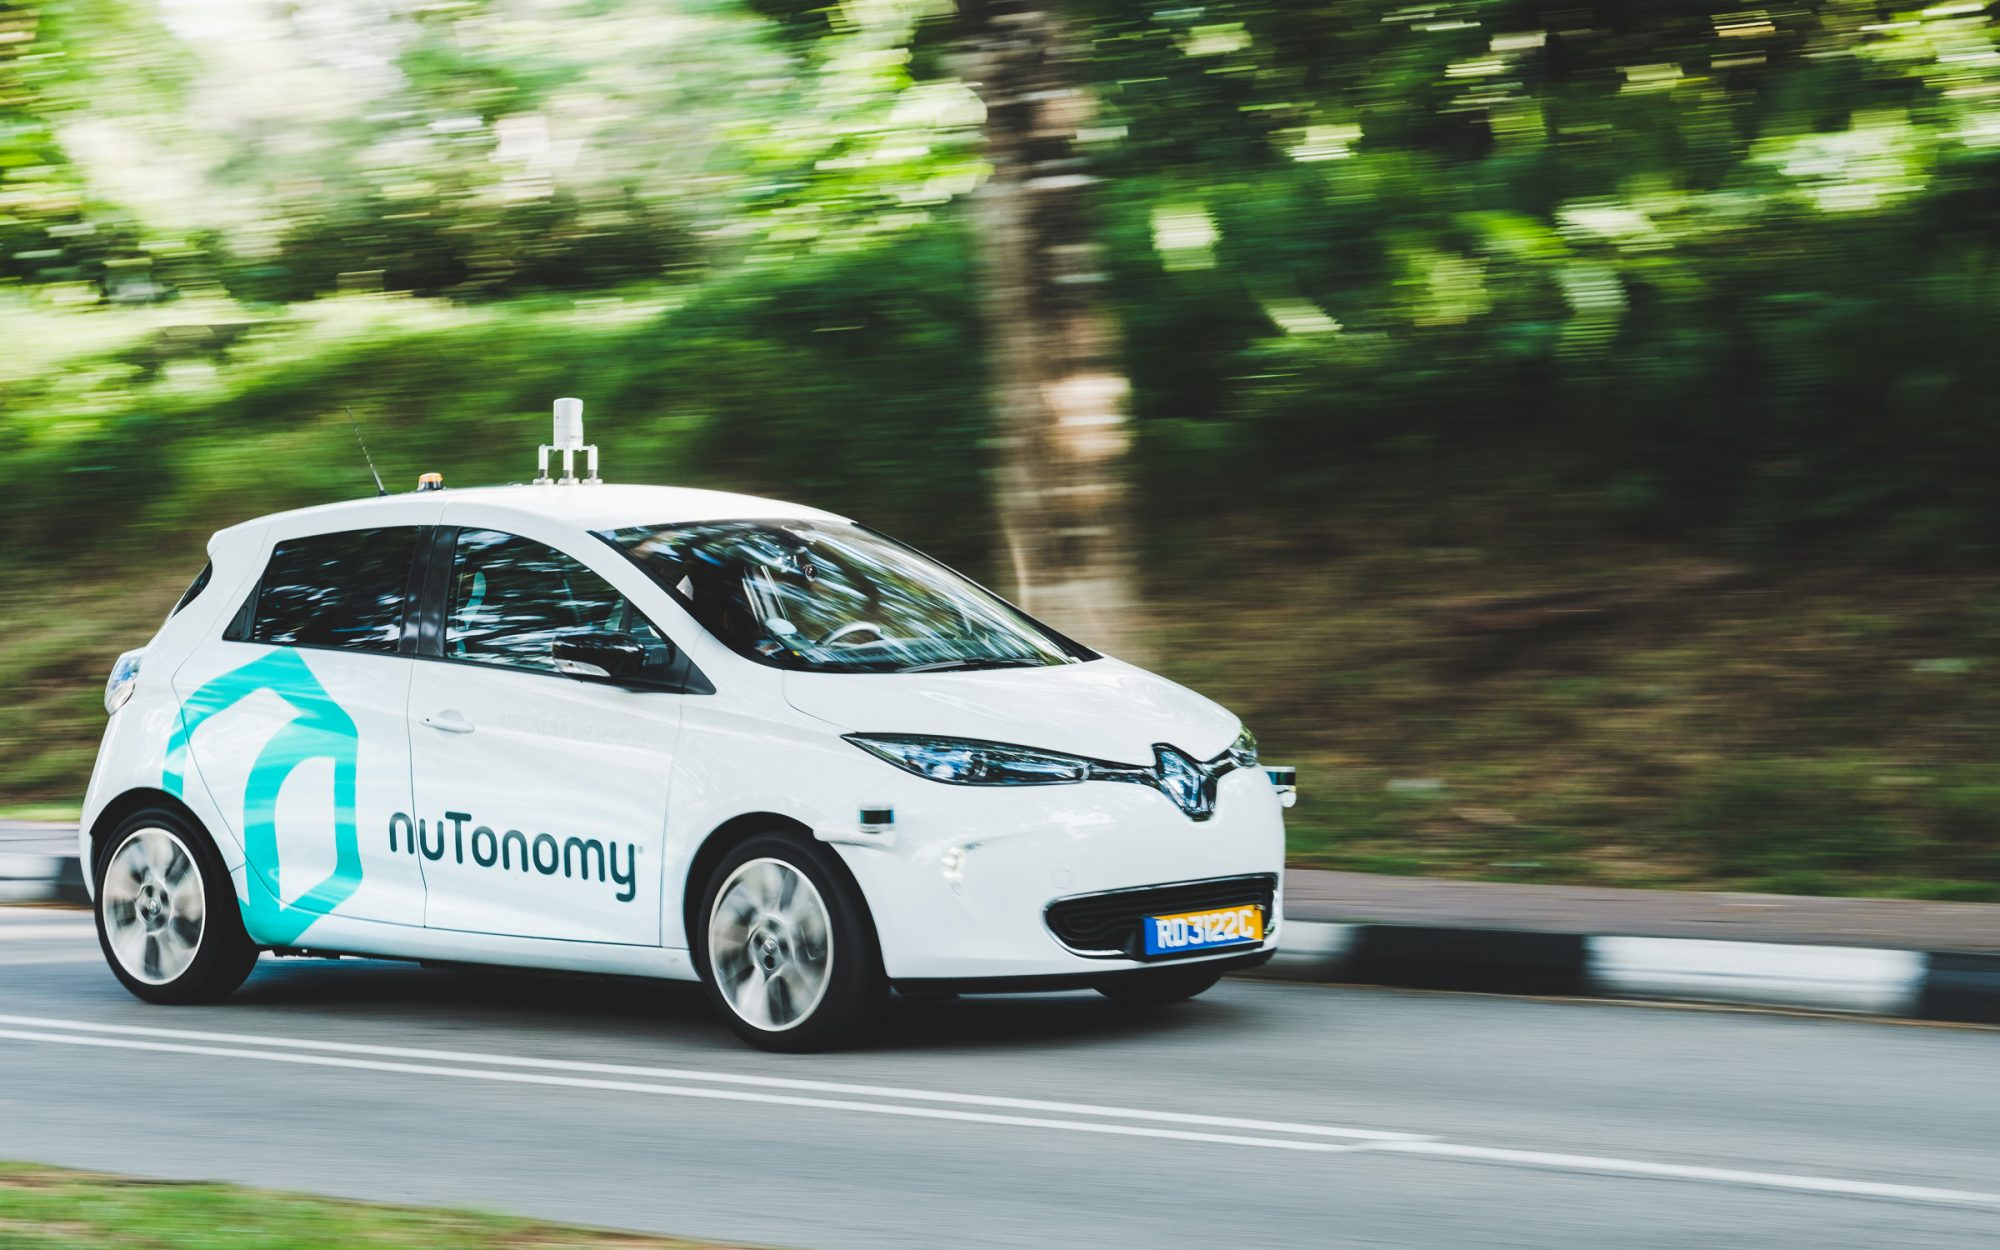 World's First Driverless Taxis Hit the Streets of Singapore